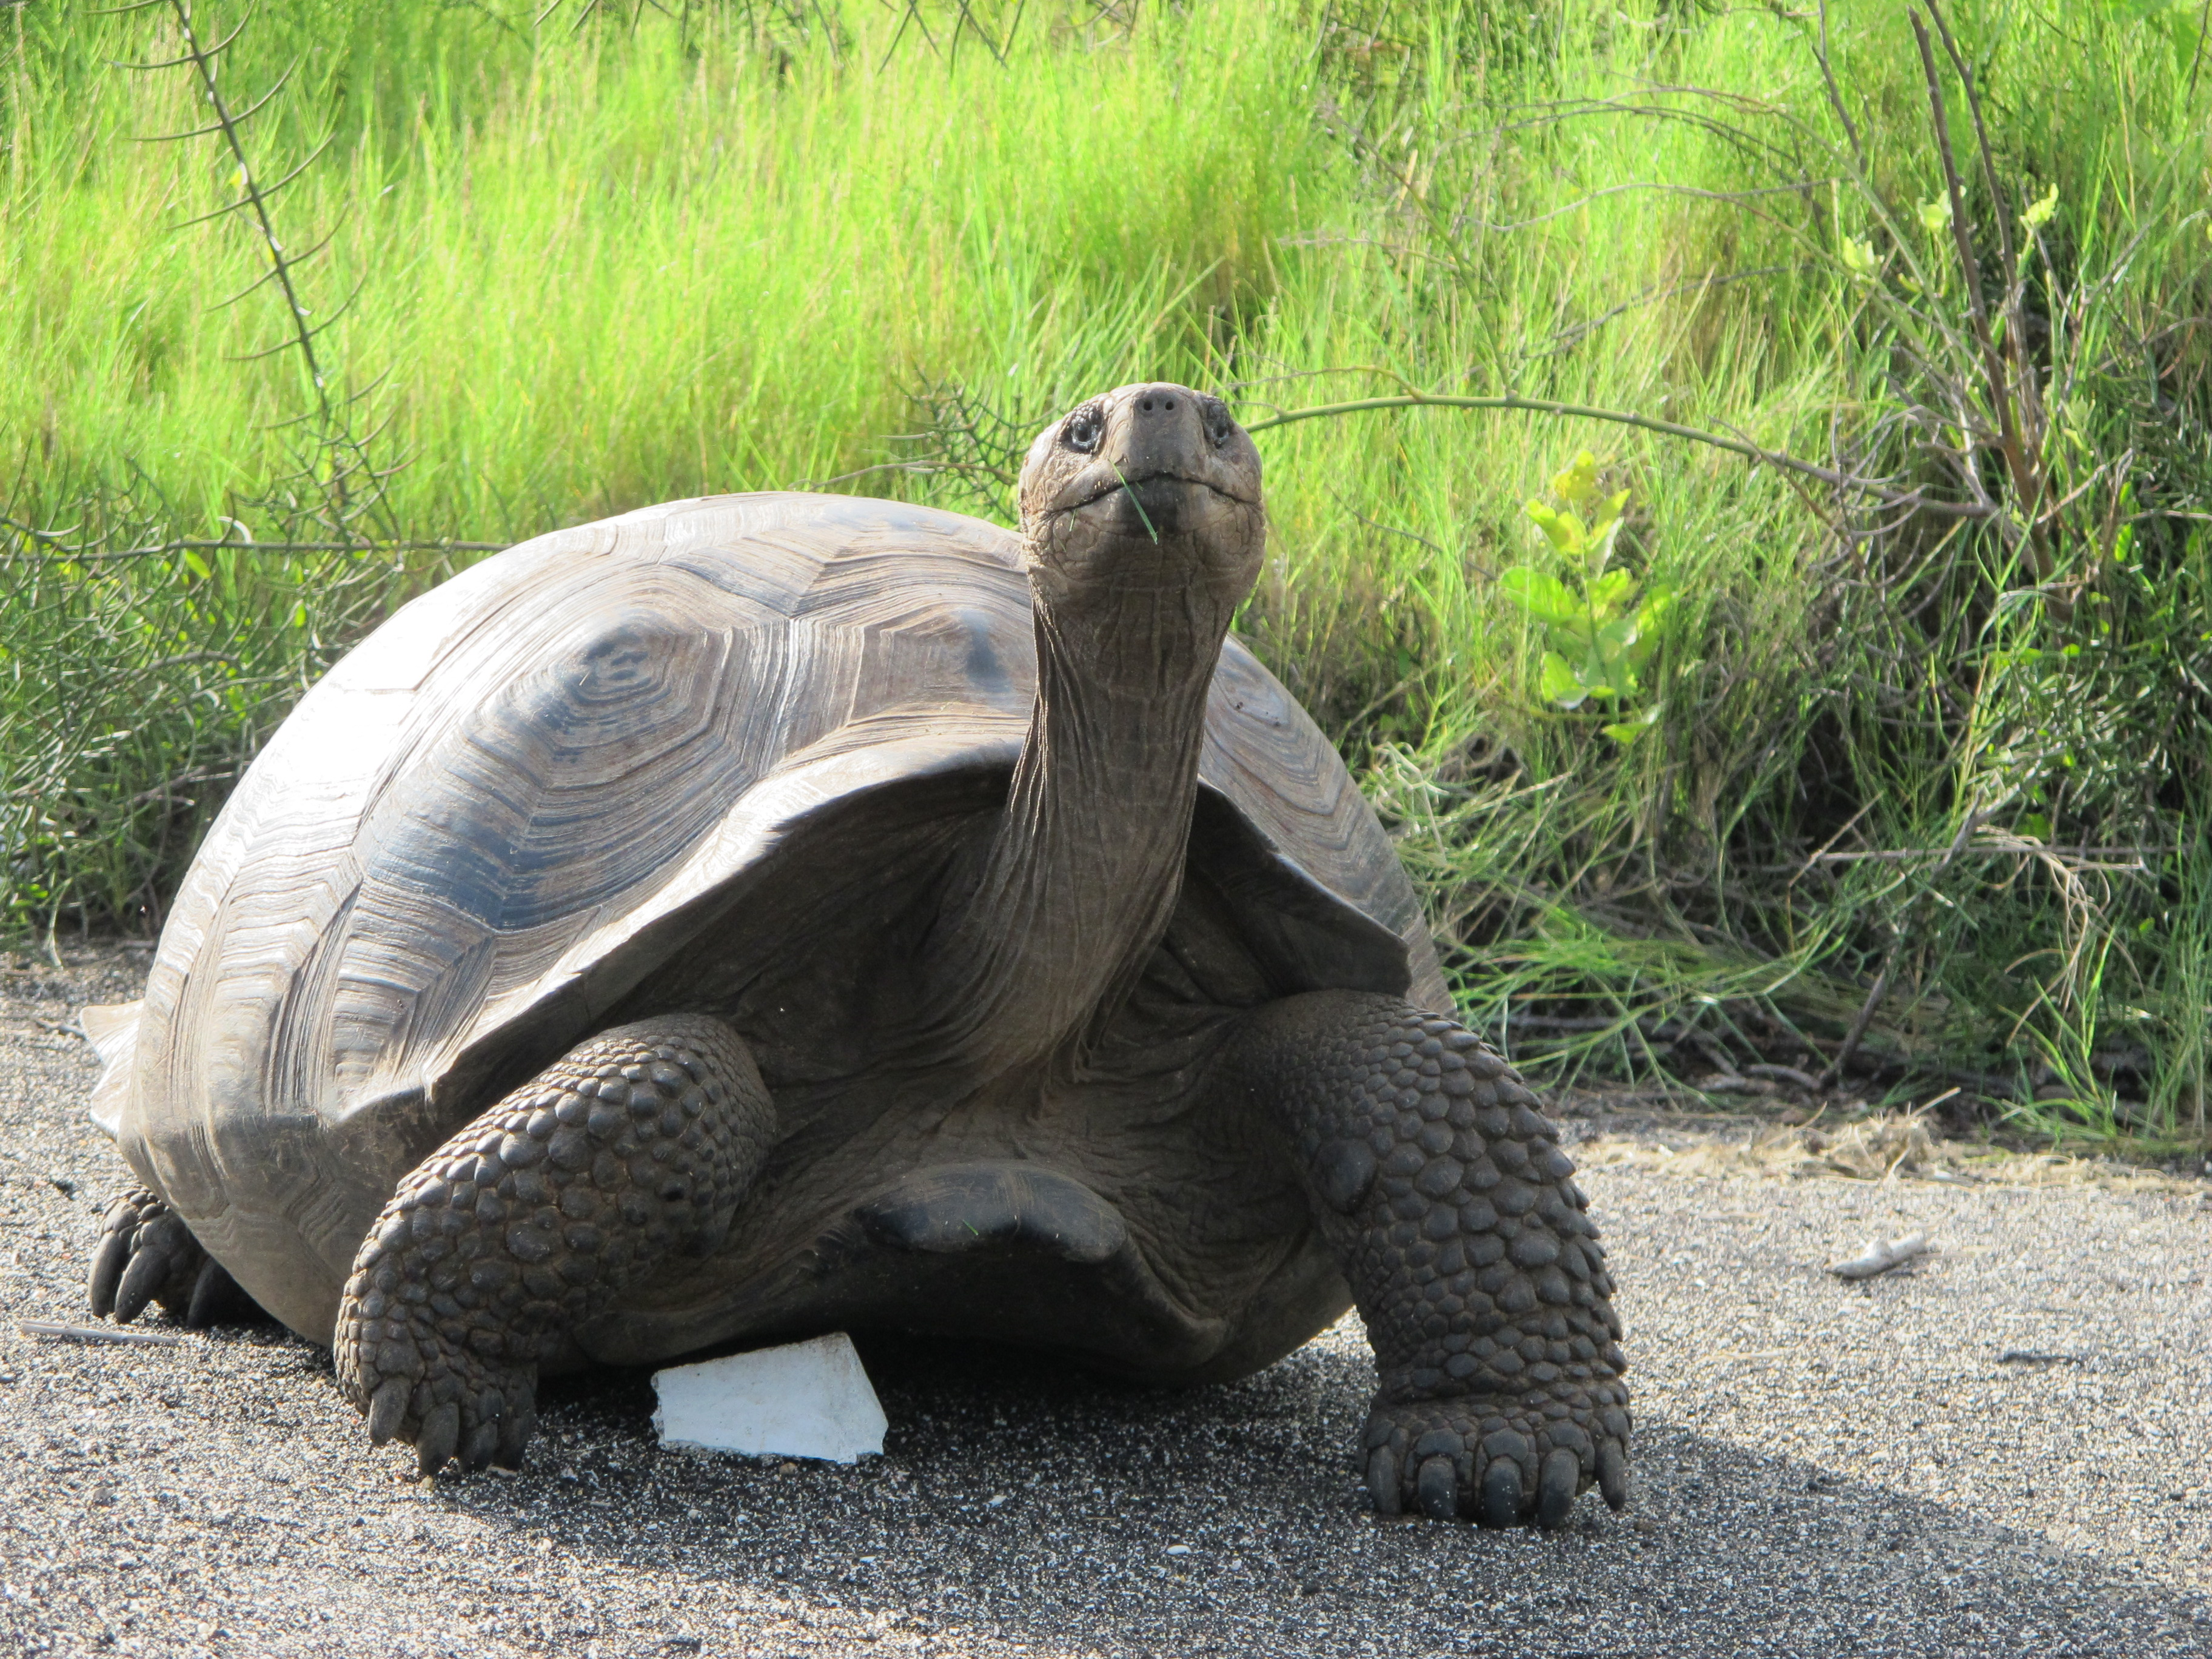 A Galapagos Giant Tortoise 'striking a pose' at Urbina Bay